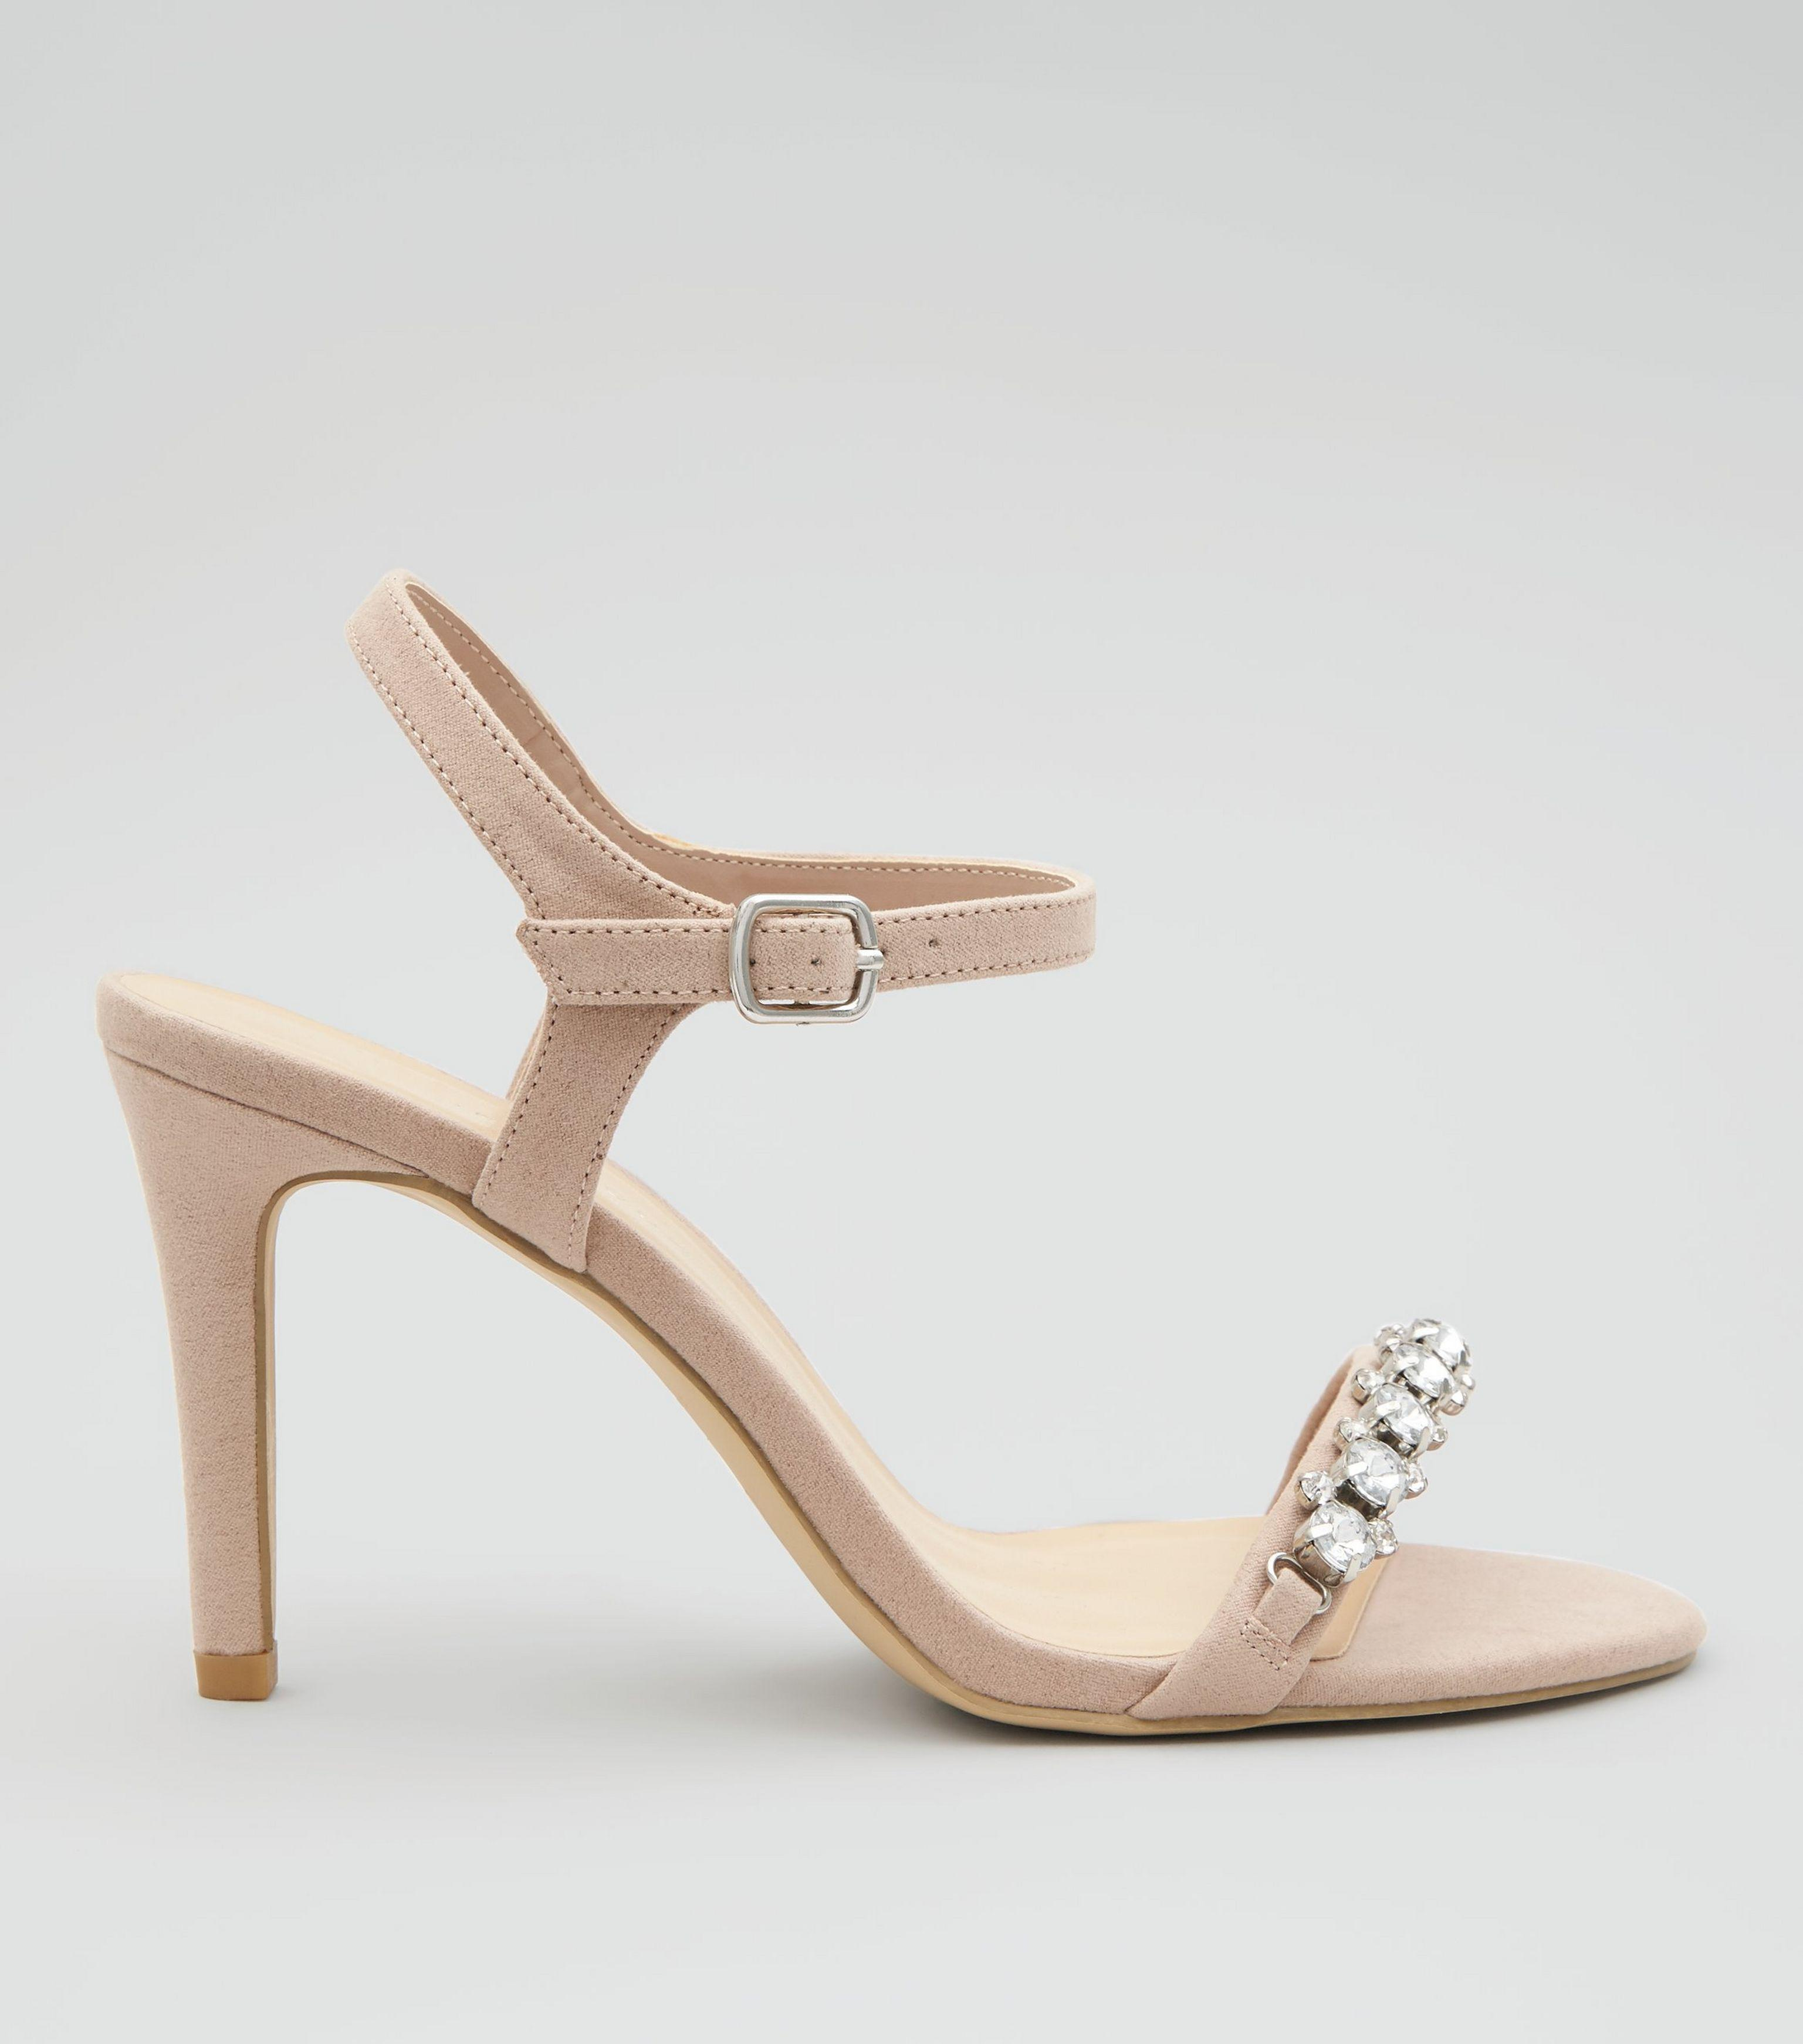 adeef3be3 New Look Wide Fit Nude Pink Gem Stone Strap Heeled Sandals in ...